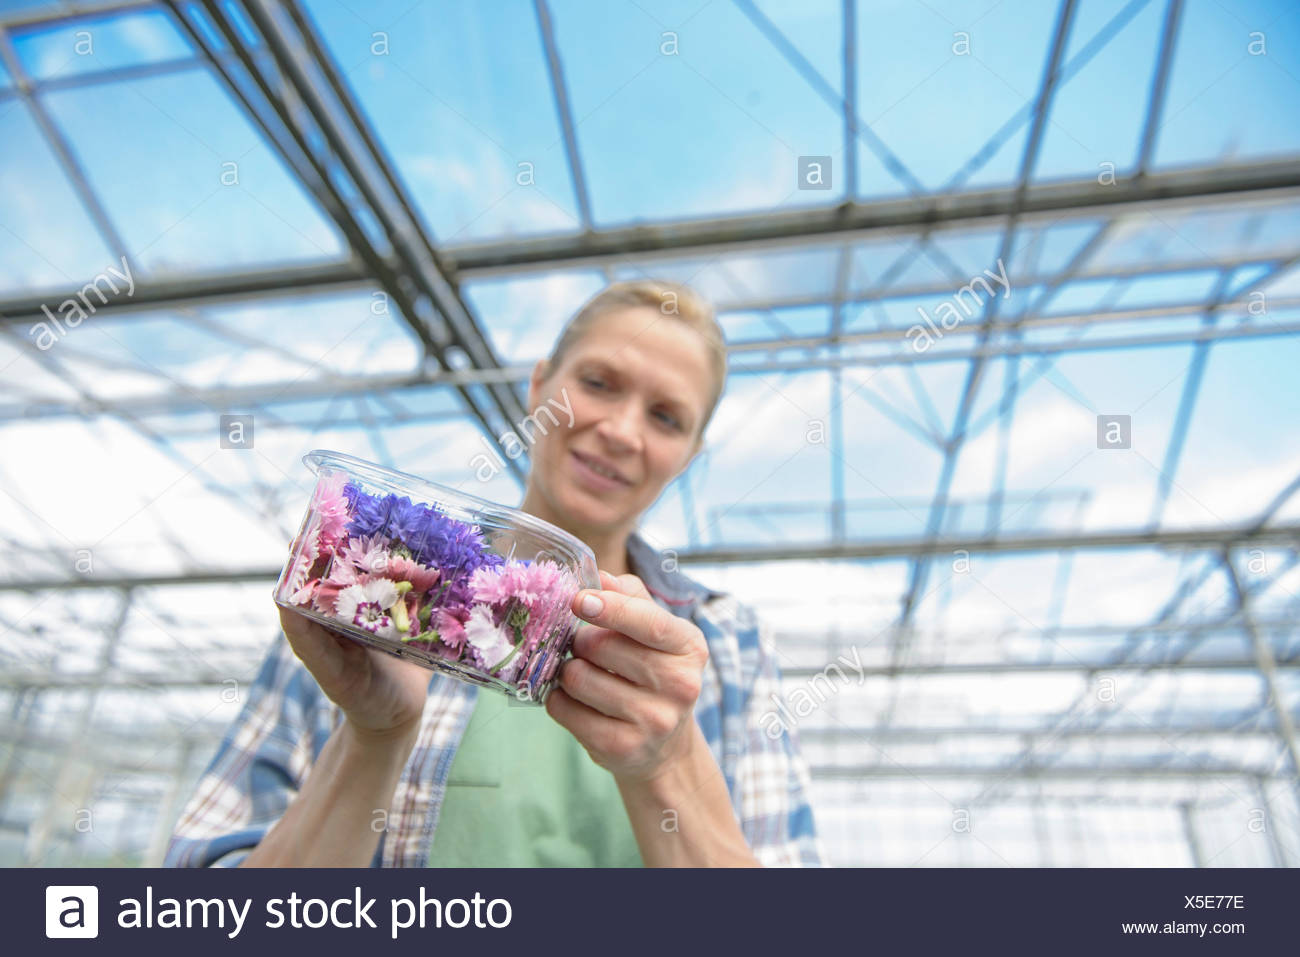 Woman holding box of edible flowers - Stock Image